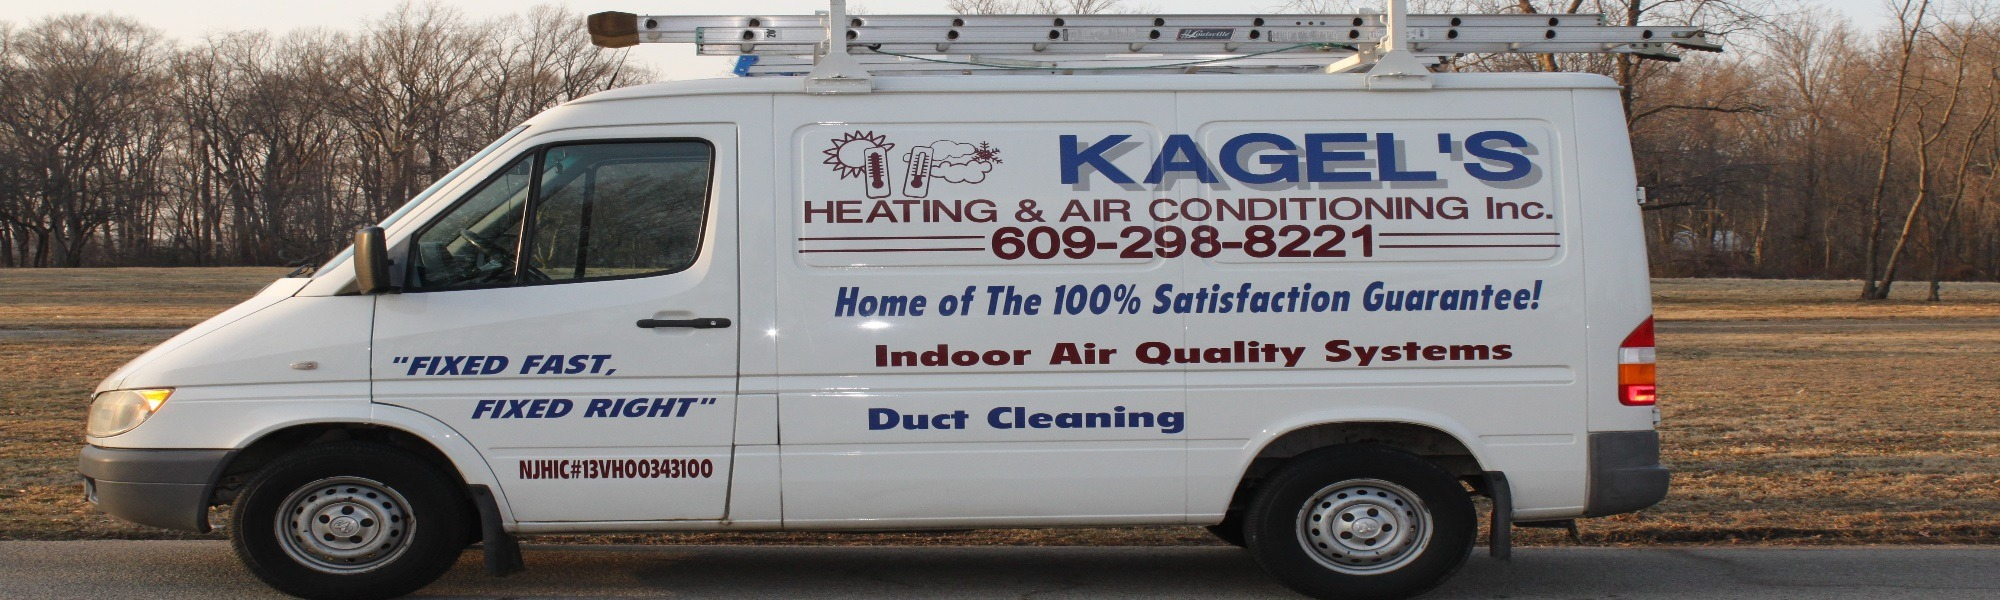 Heating and Air Conditioning company truck